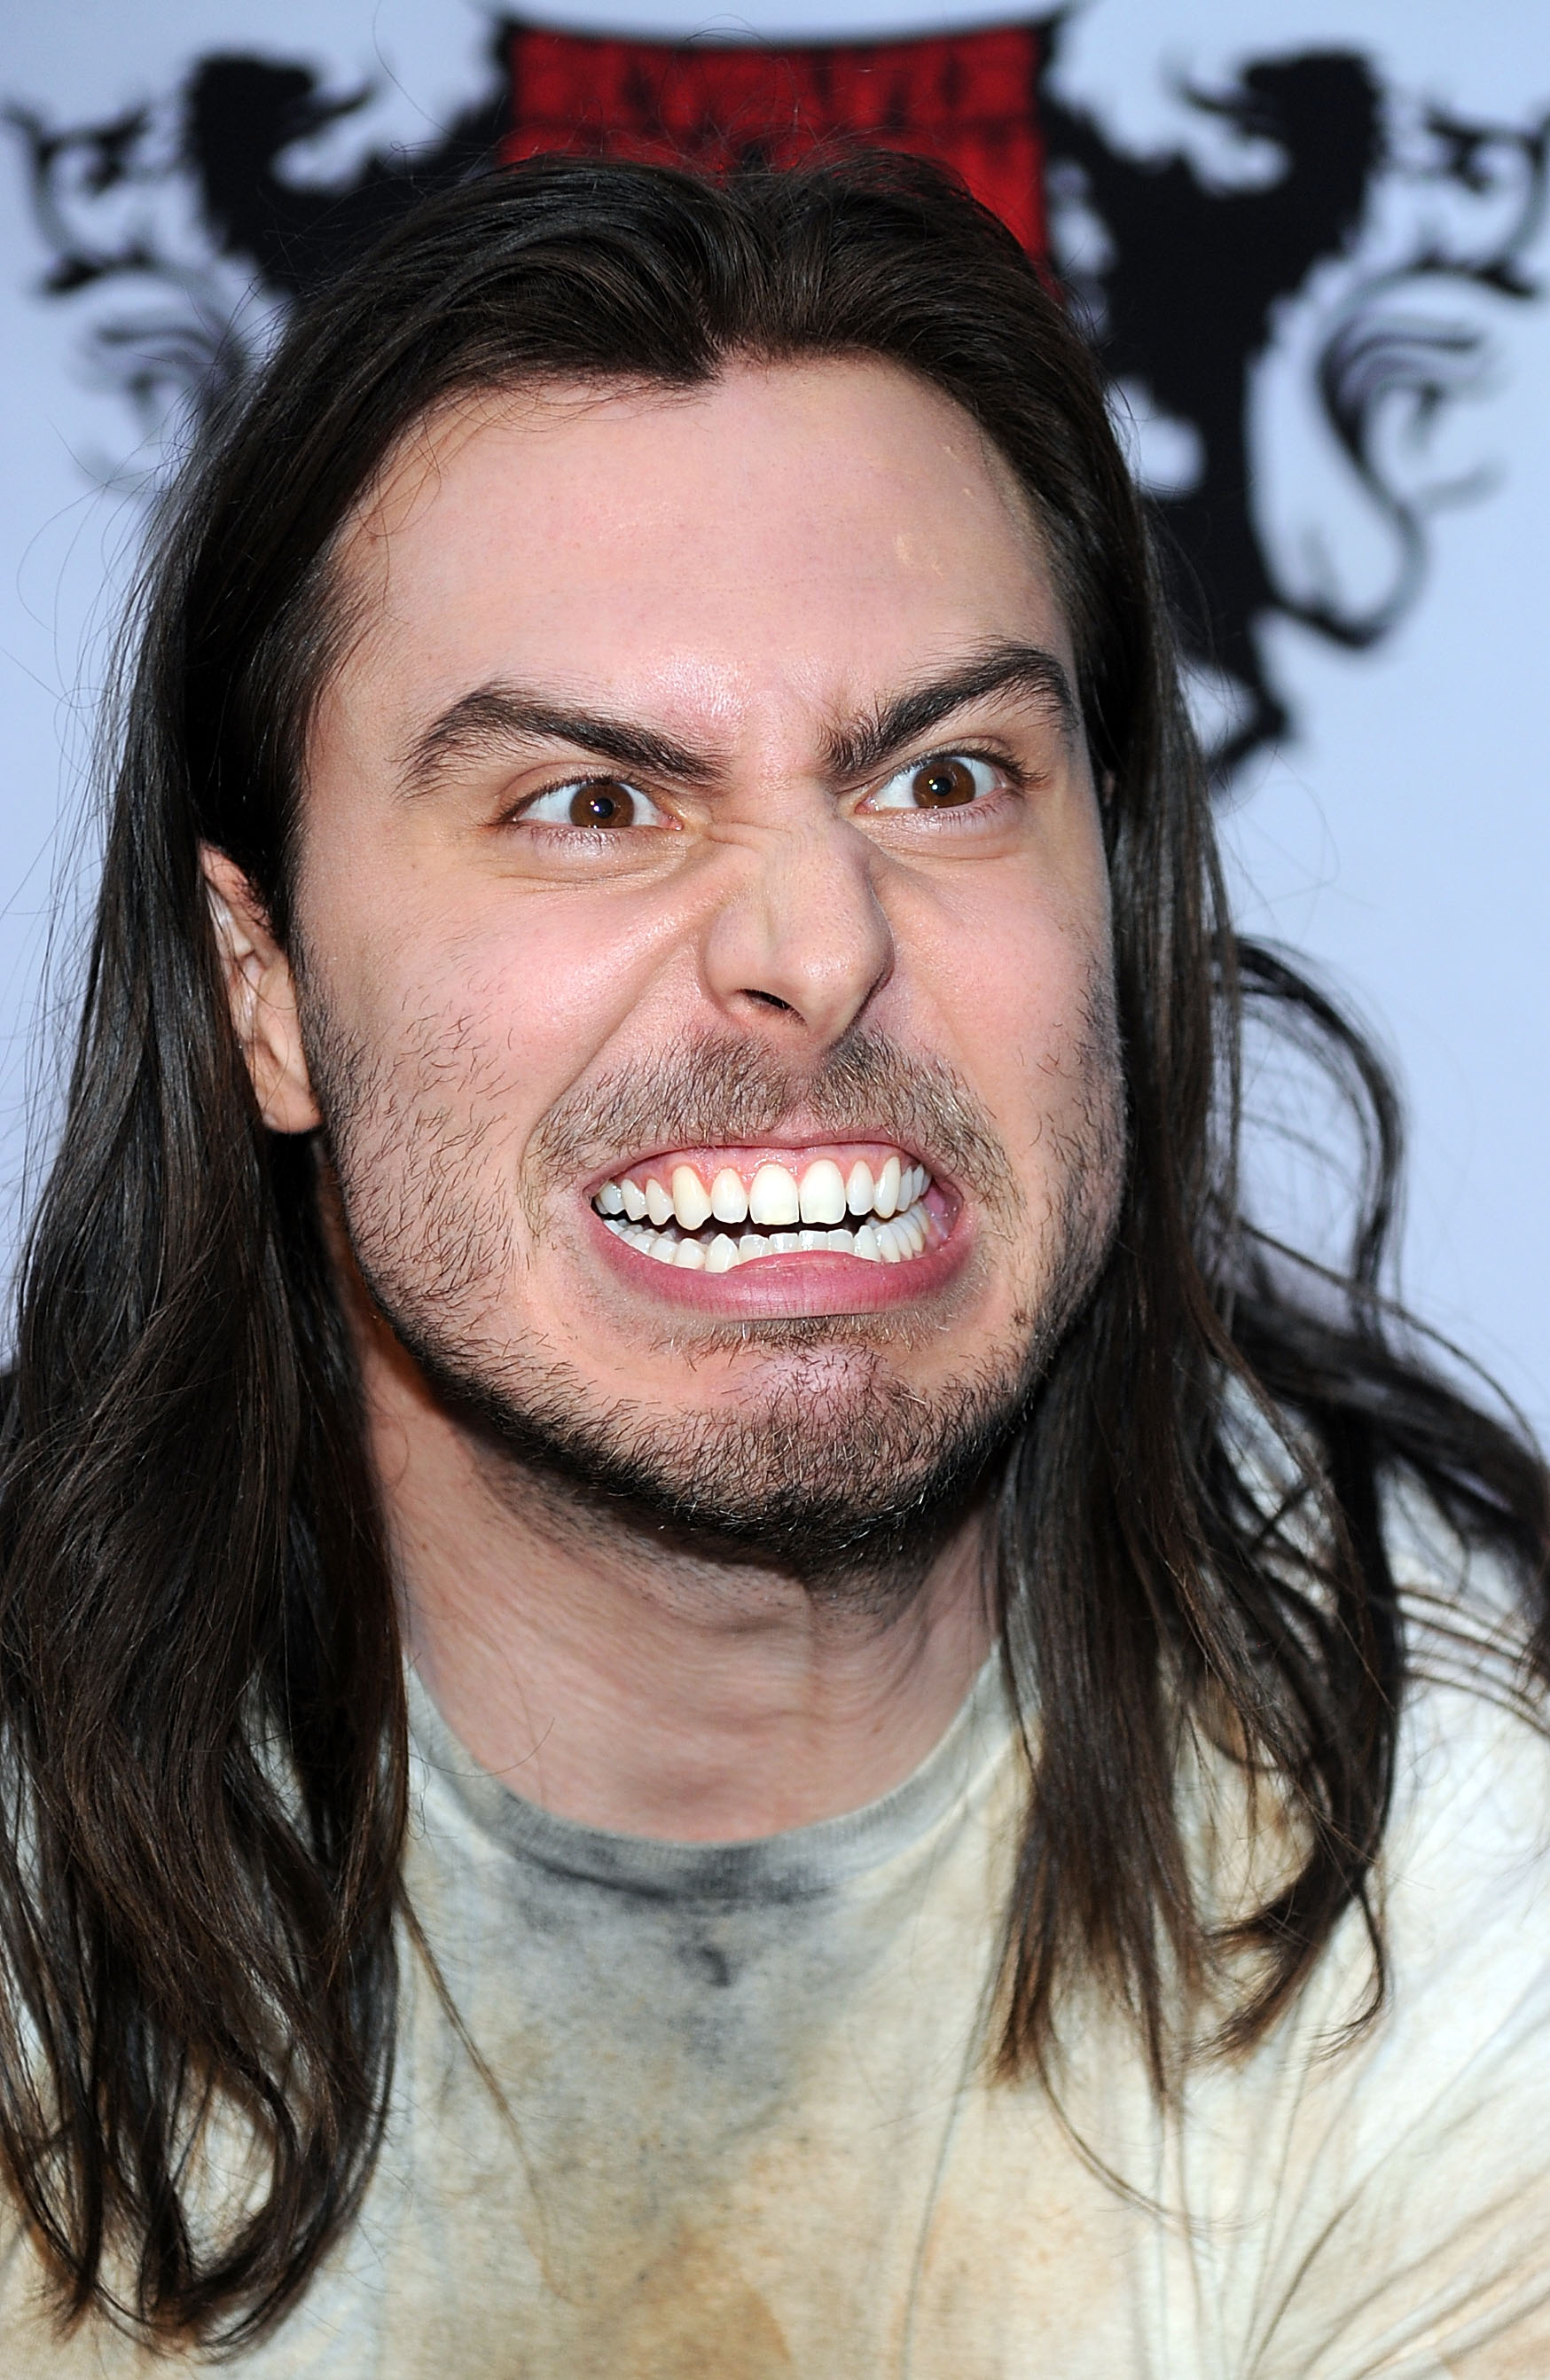 Musician Andrew W.K. arrives at the 2nd annual Revolver Golden Gods Awards held at Club Nokia on April 8, 2010 in Los Angeles, California.